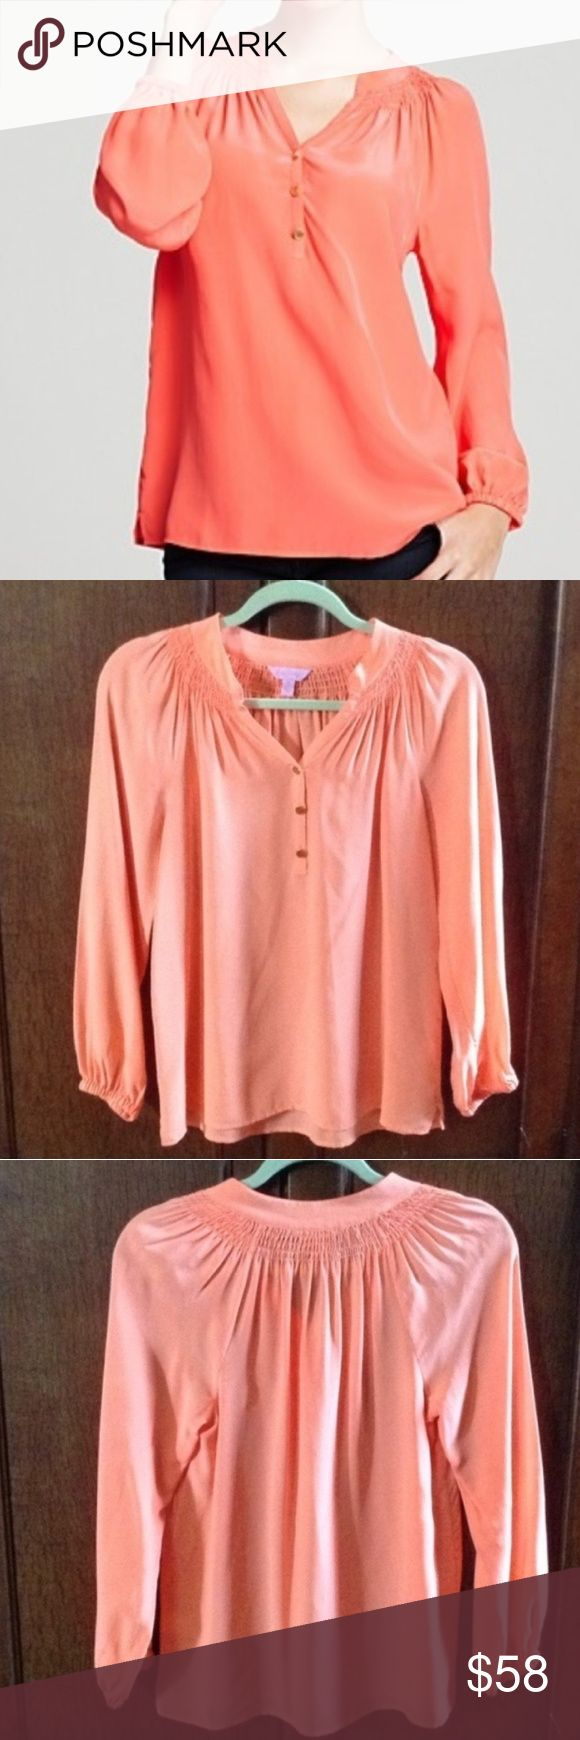 "Lilly Pulitzer Elsa 100% Silk ""Sunset Orange"" Top Loose fitting long sleeve blouse with smocking at the neck.   100% silk.   Color is ""Sunset Orange"", which is more coral than orange.   Excellent overall condition.  Shoulder to shoulder approx 16"" across when flat, armpit to armpit 17.5"", sleeve 23"", length 25.5"". Measurements are approximate. Lilly Pulitzer Tops Blouses"